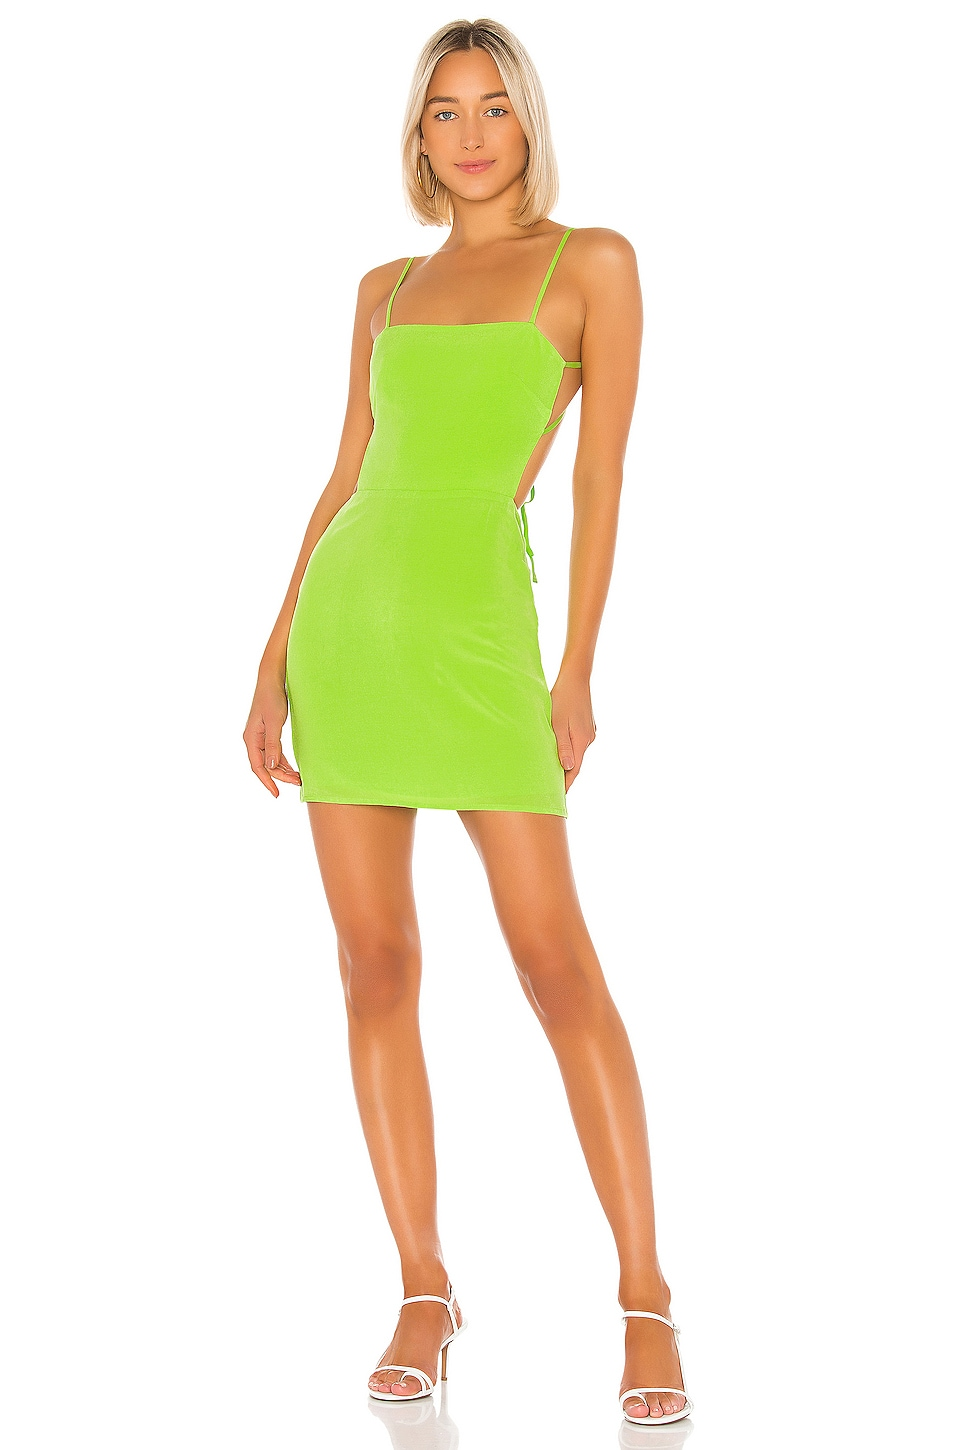 Lovers + Friends Blade Mini Dress in Lime Green